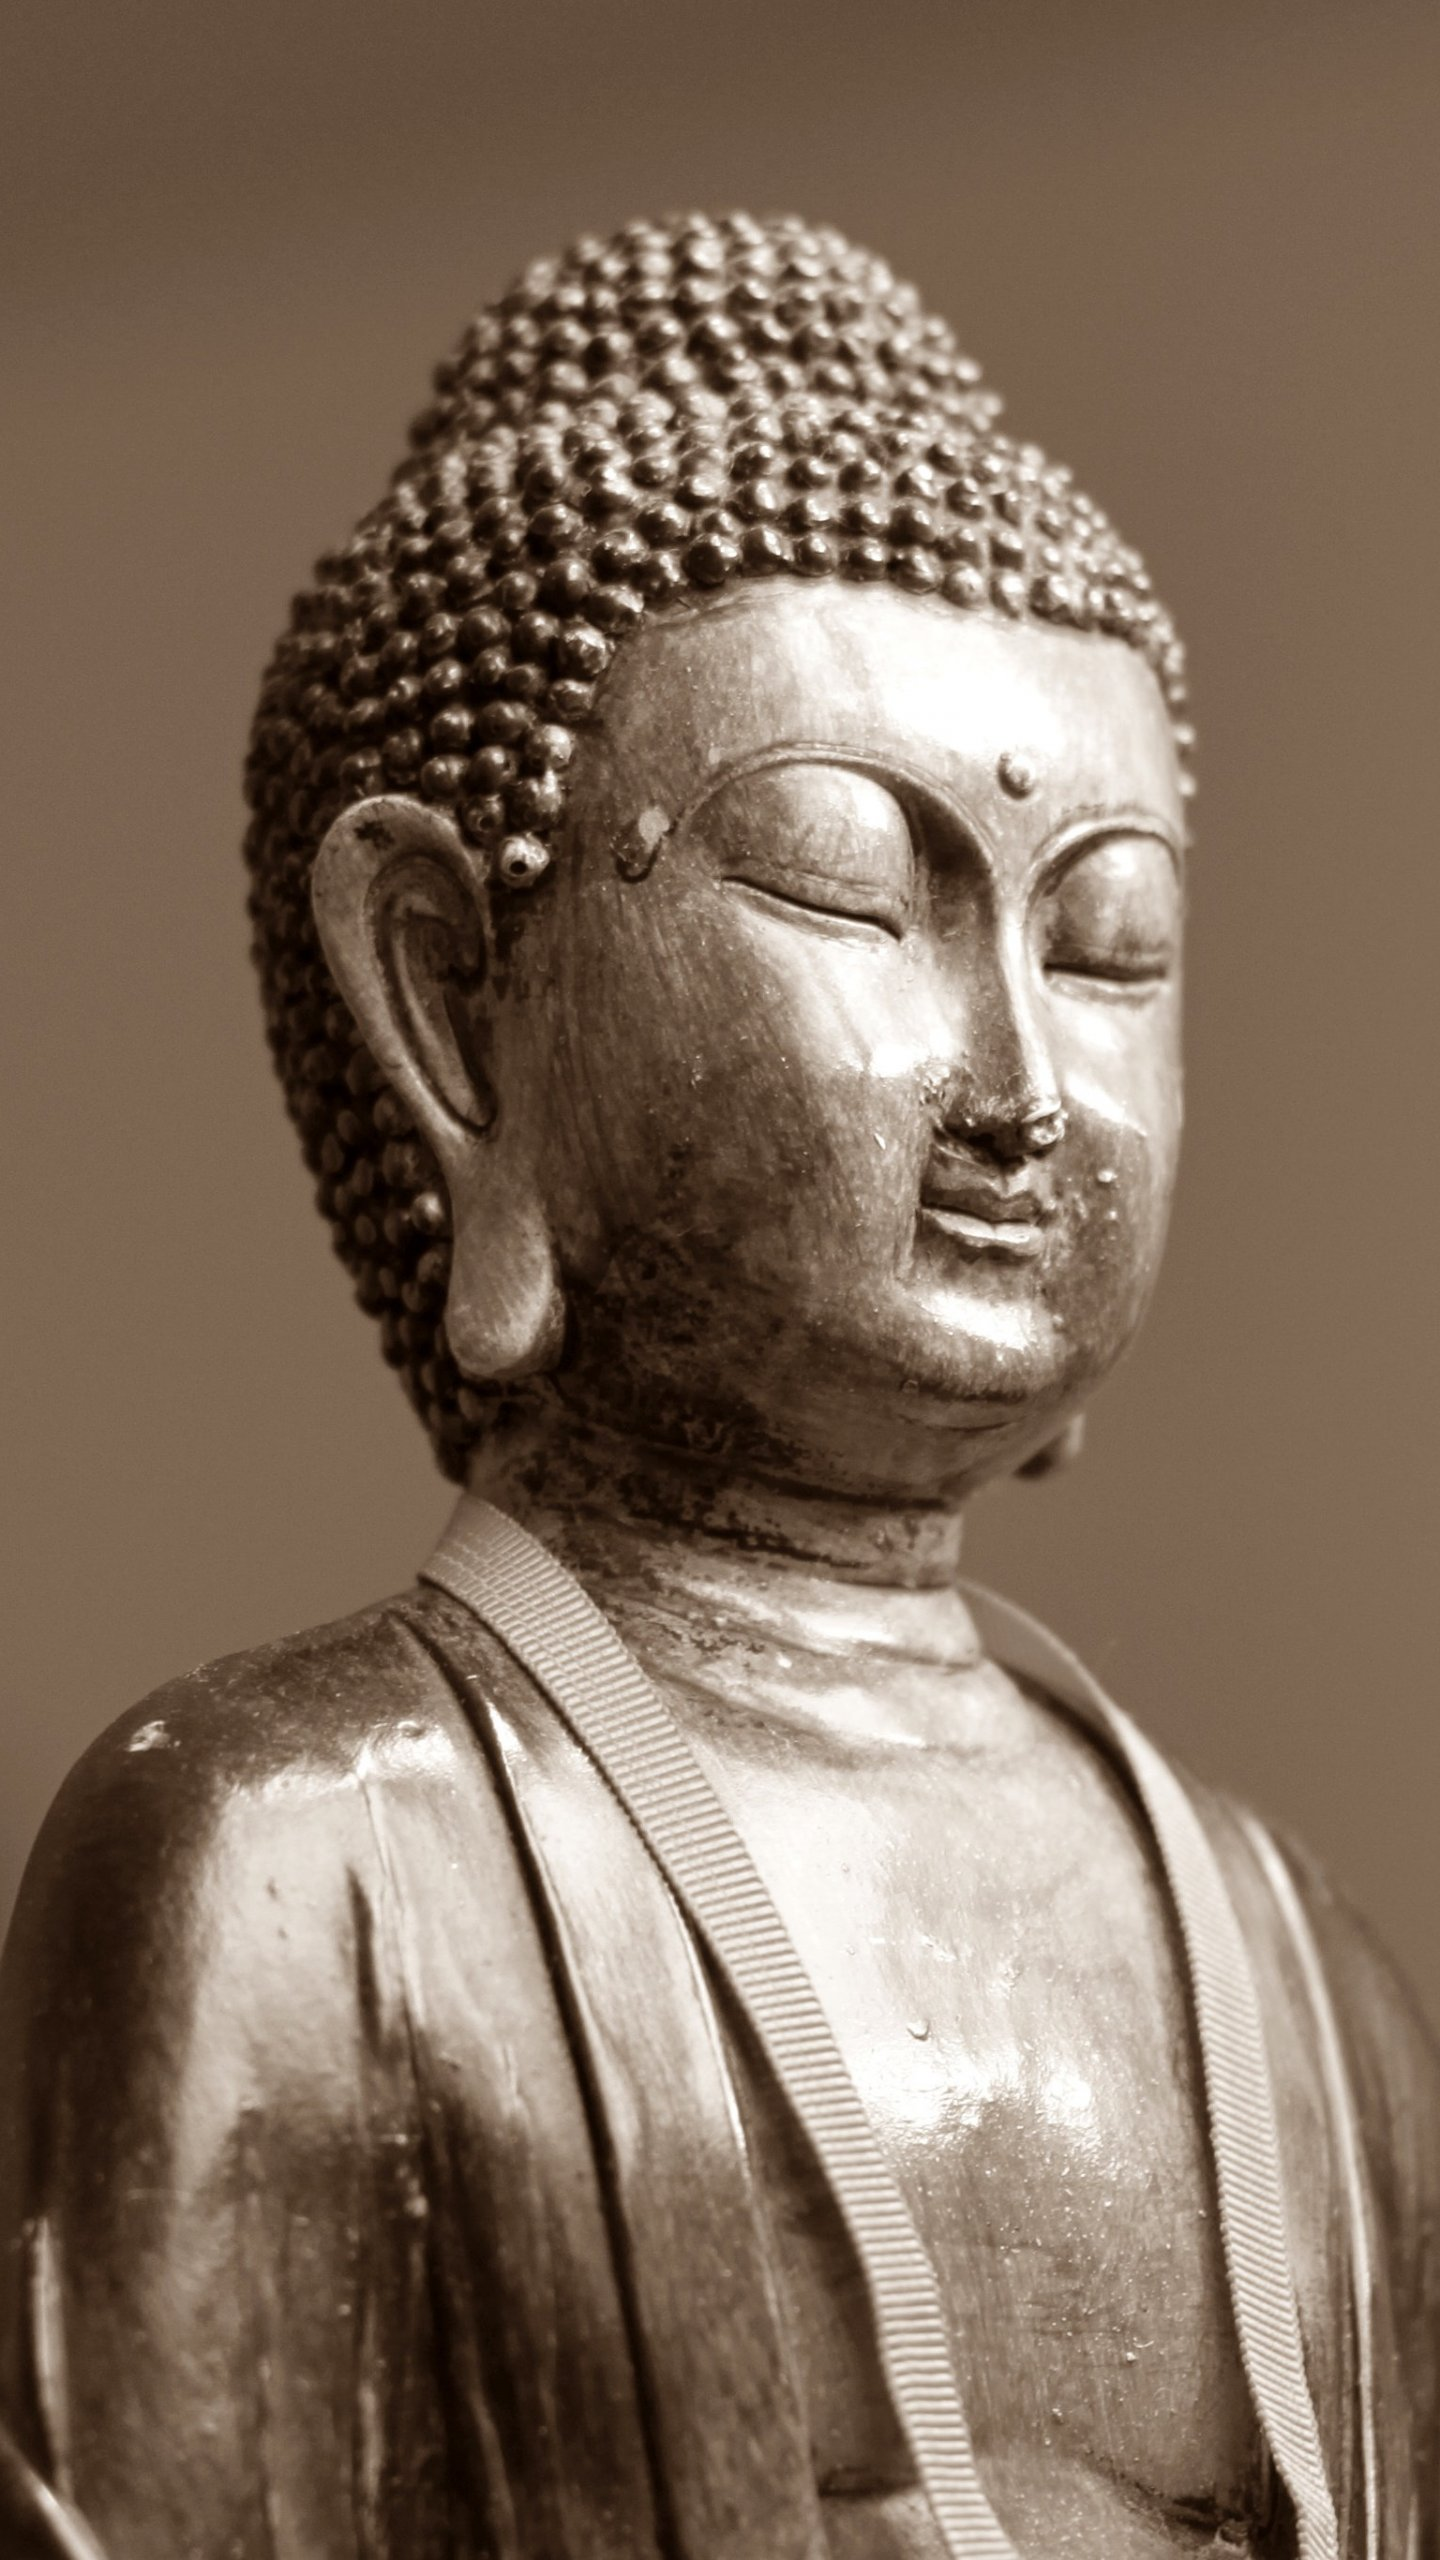 Laughing Buddha Iphone Wallpaper Buddha Statue Wallpaper Iphone Android And Desktop